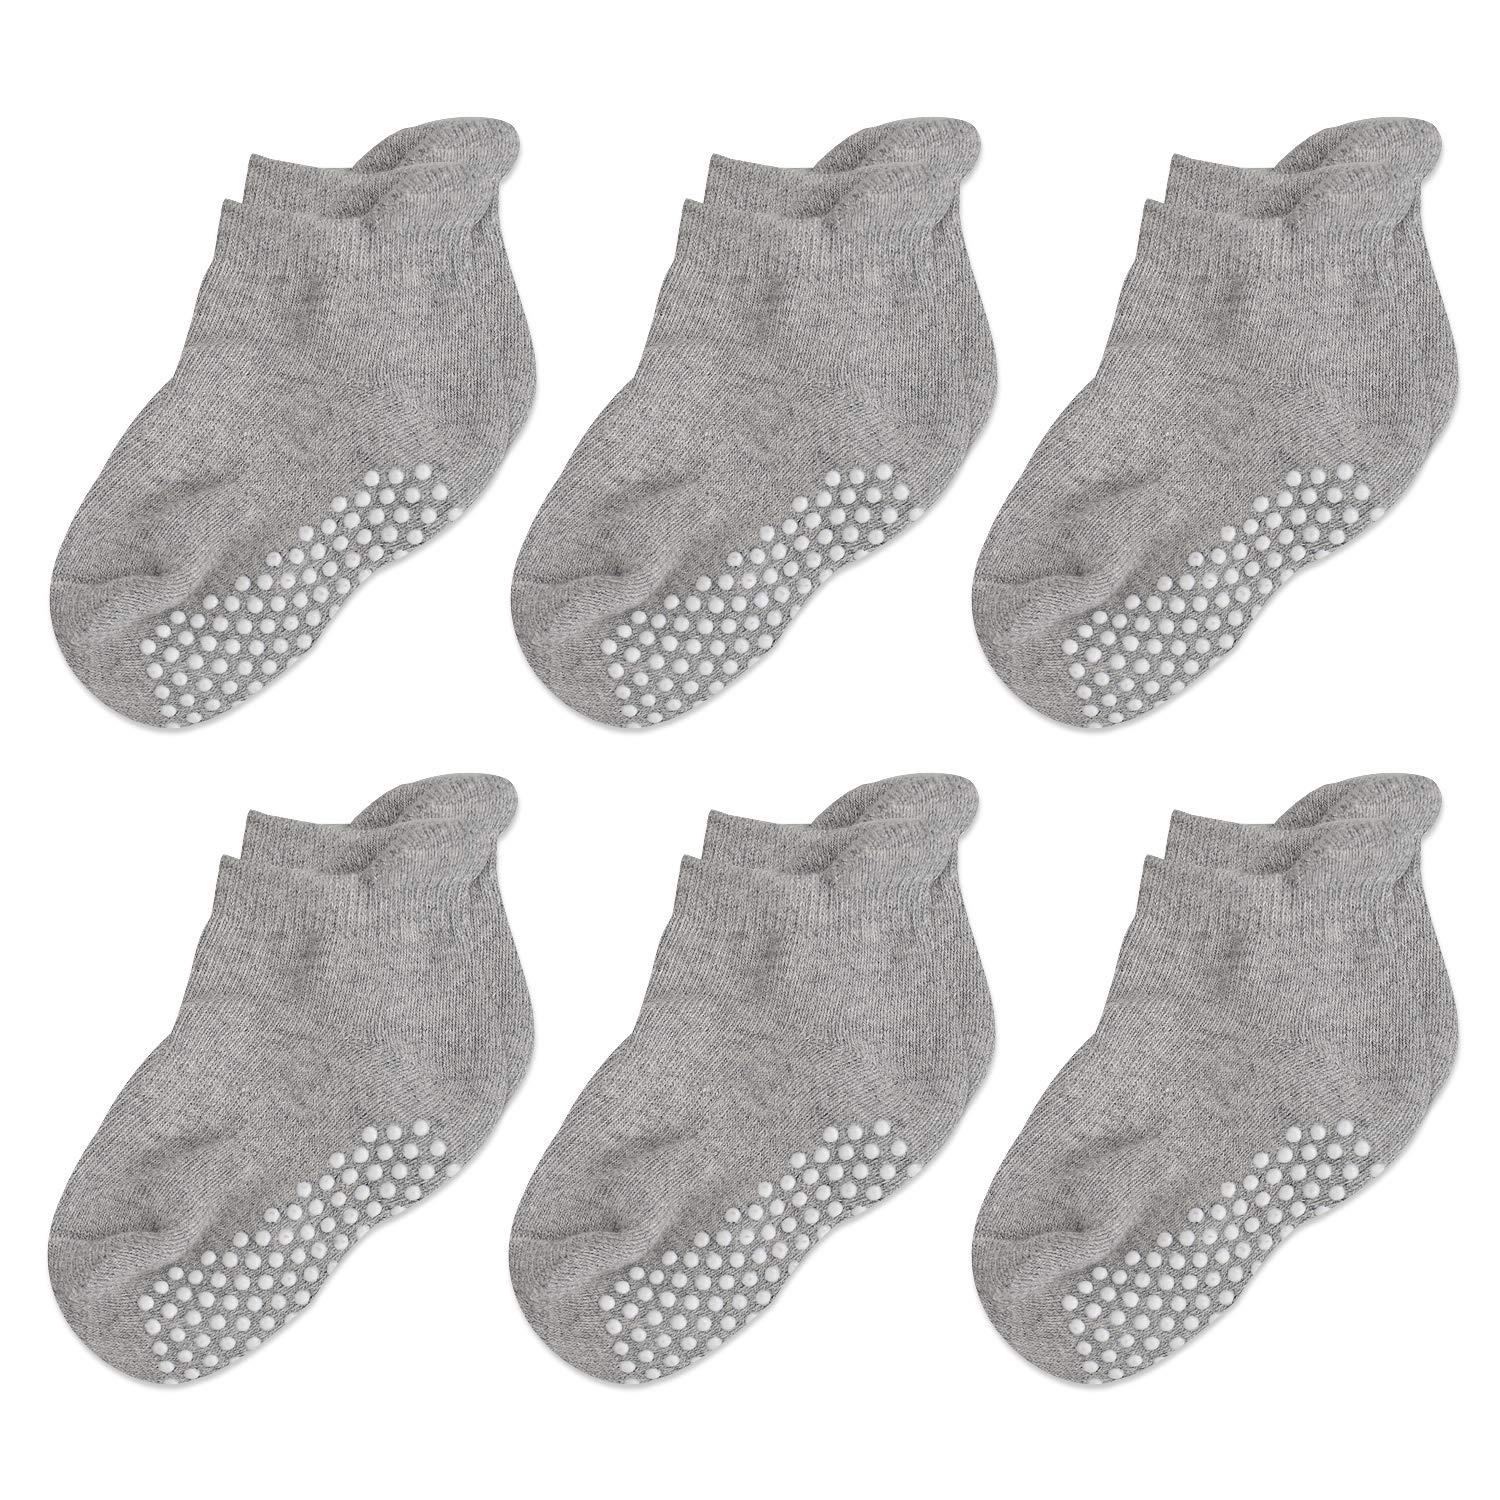 Epeius Unisex-Baby Non-Skid Socks Grip Ankle Socks Infants and Toddlers 6 Pair Pack